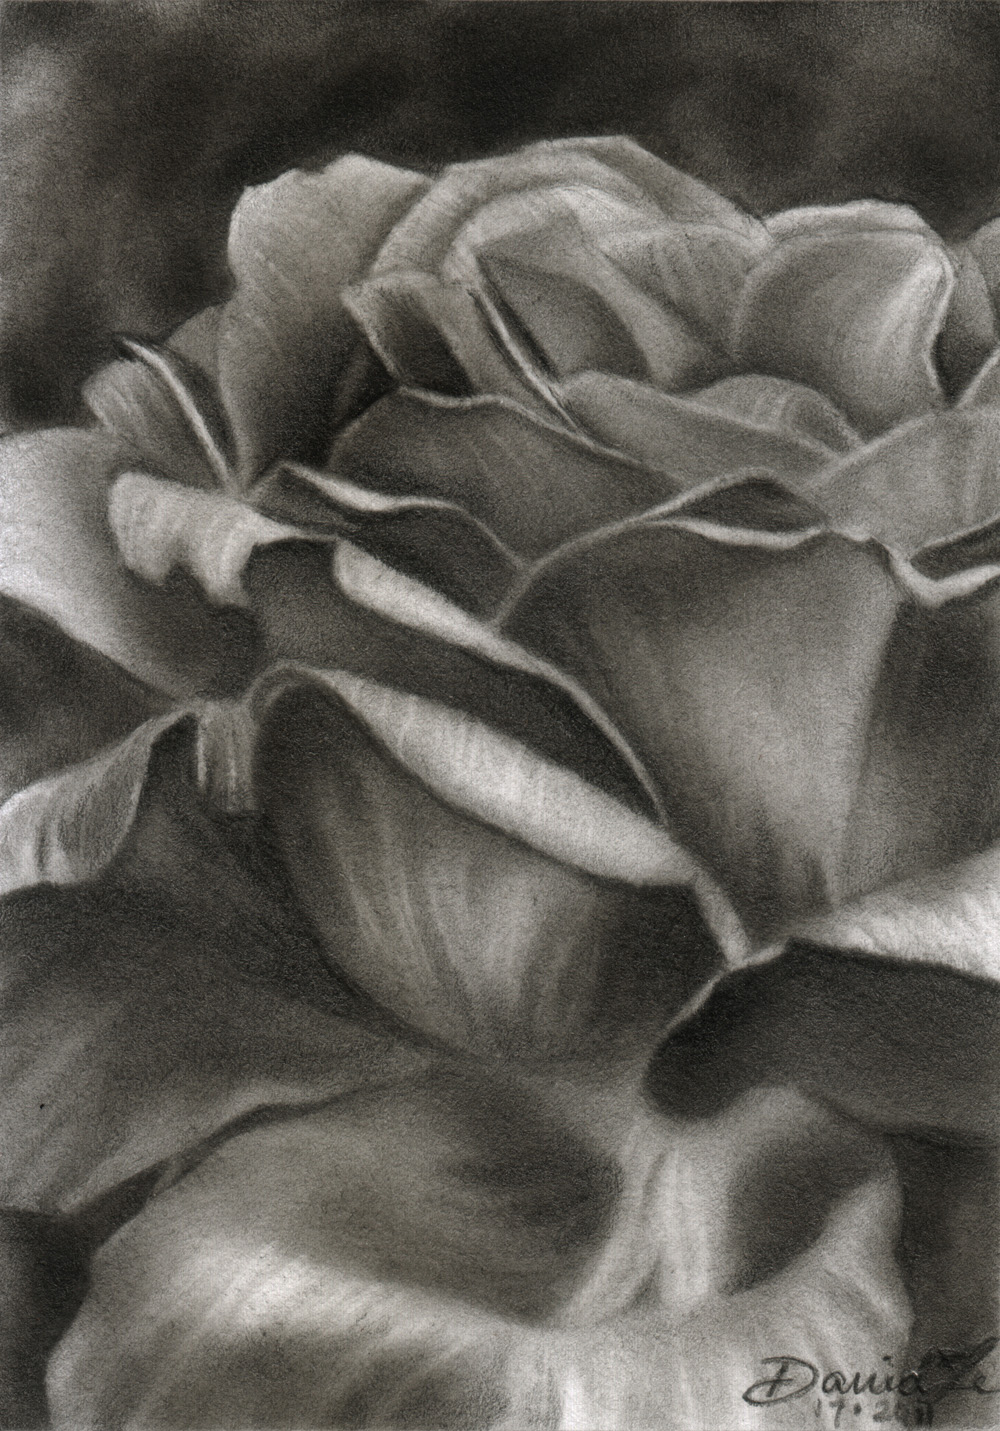 Pencil Drawings by David Te: October 2011